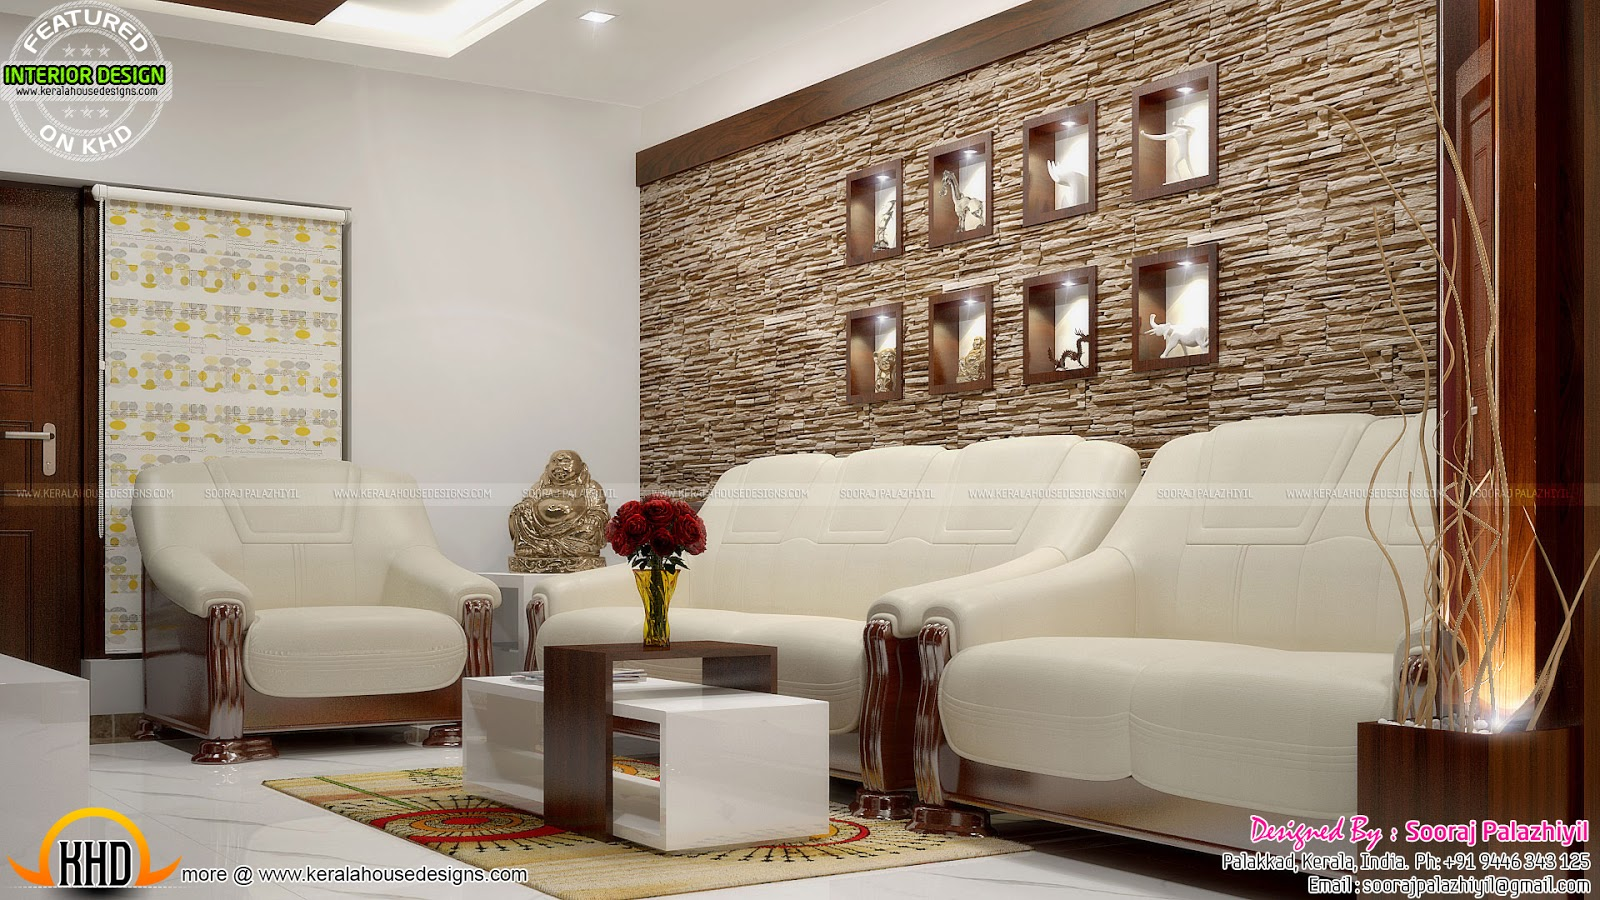 Simple apartment interior in kerala kerala home design for Kerala home interior designs photos